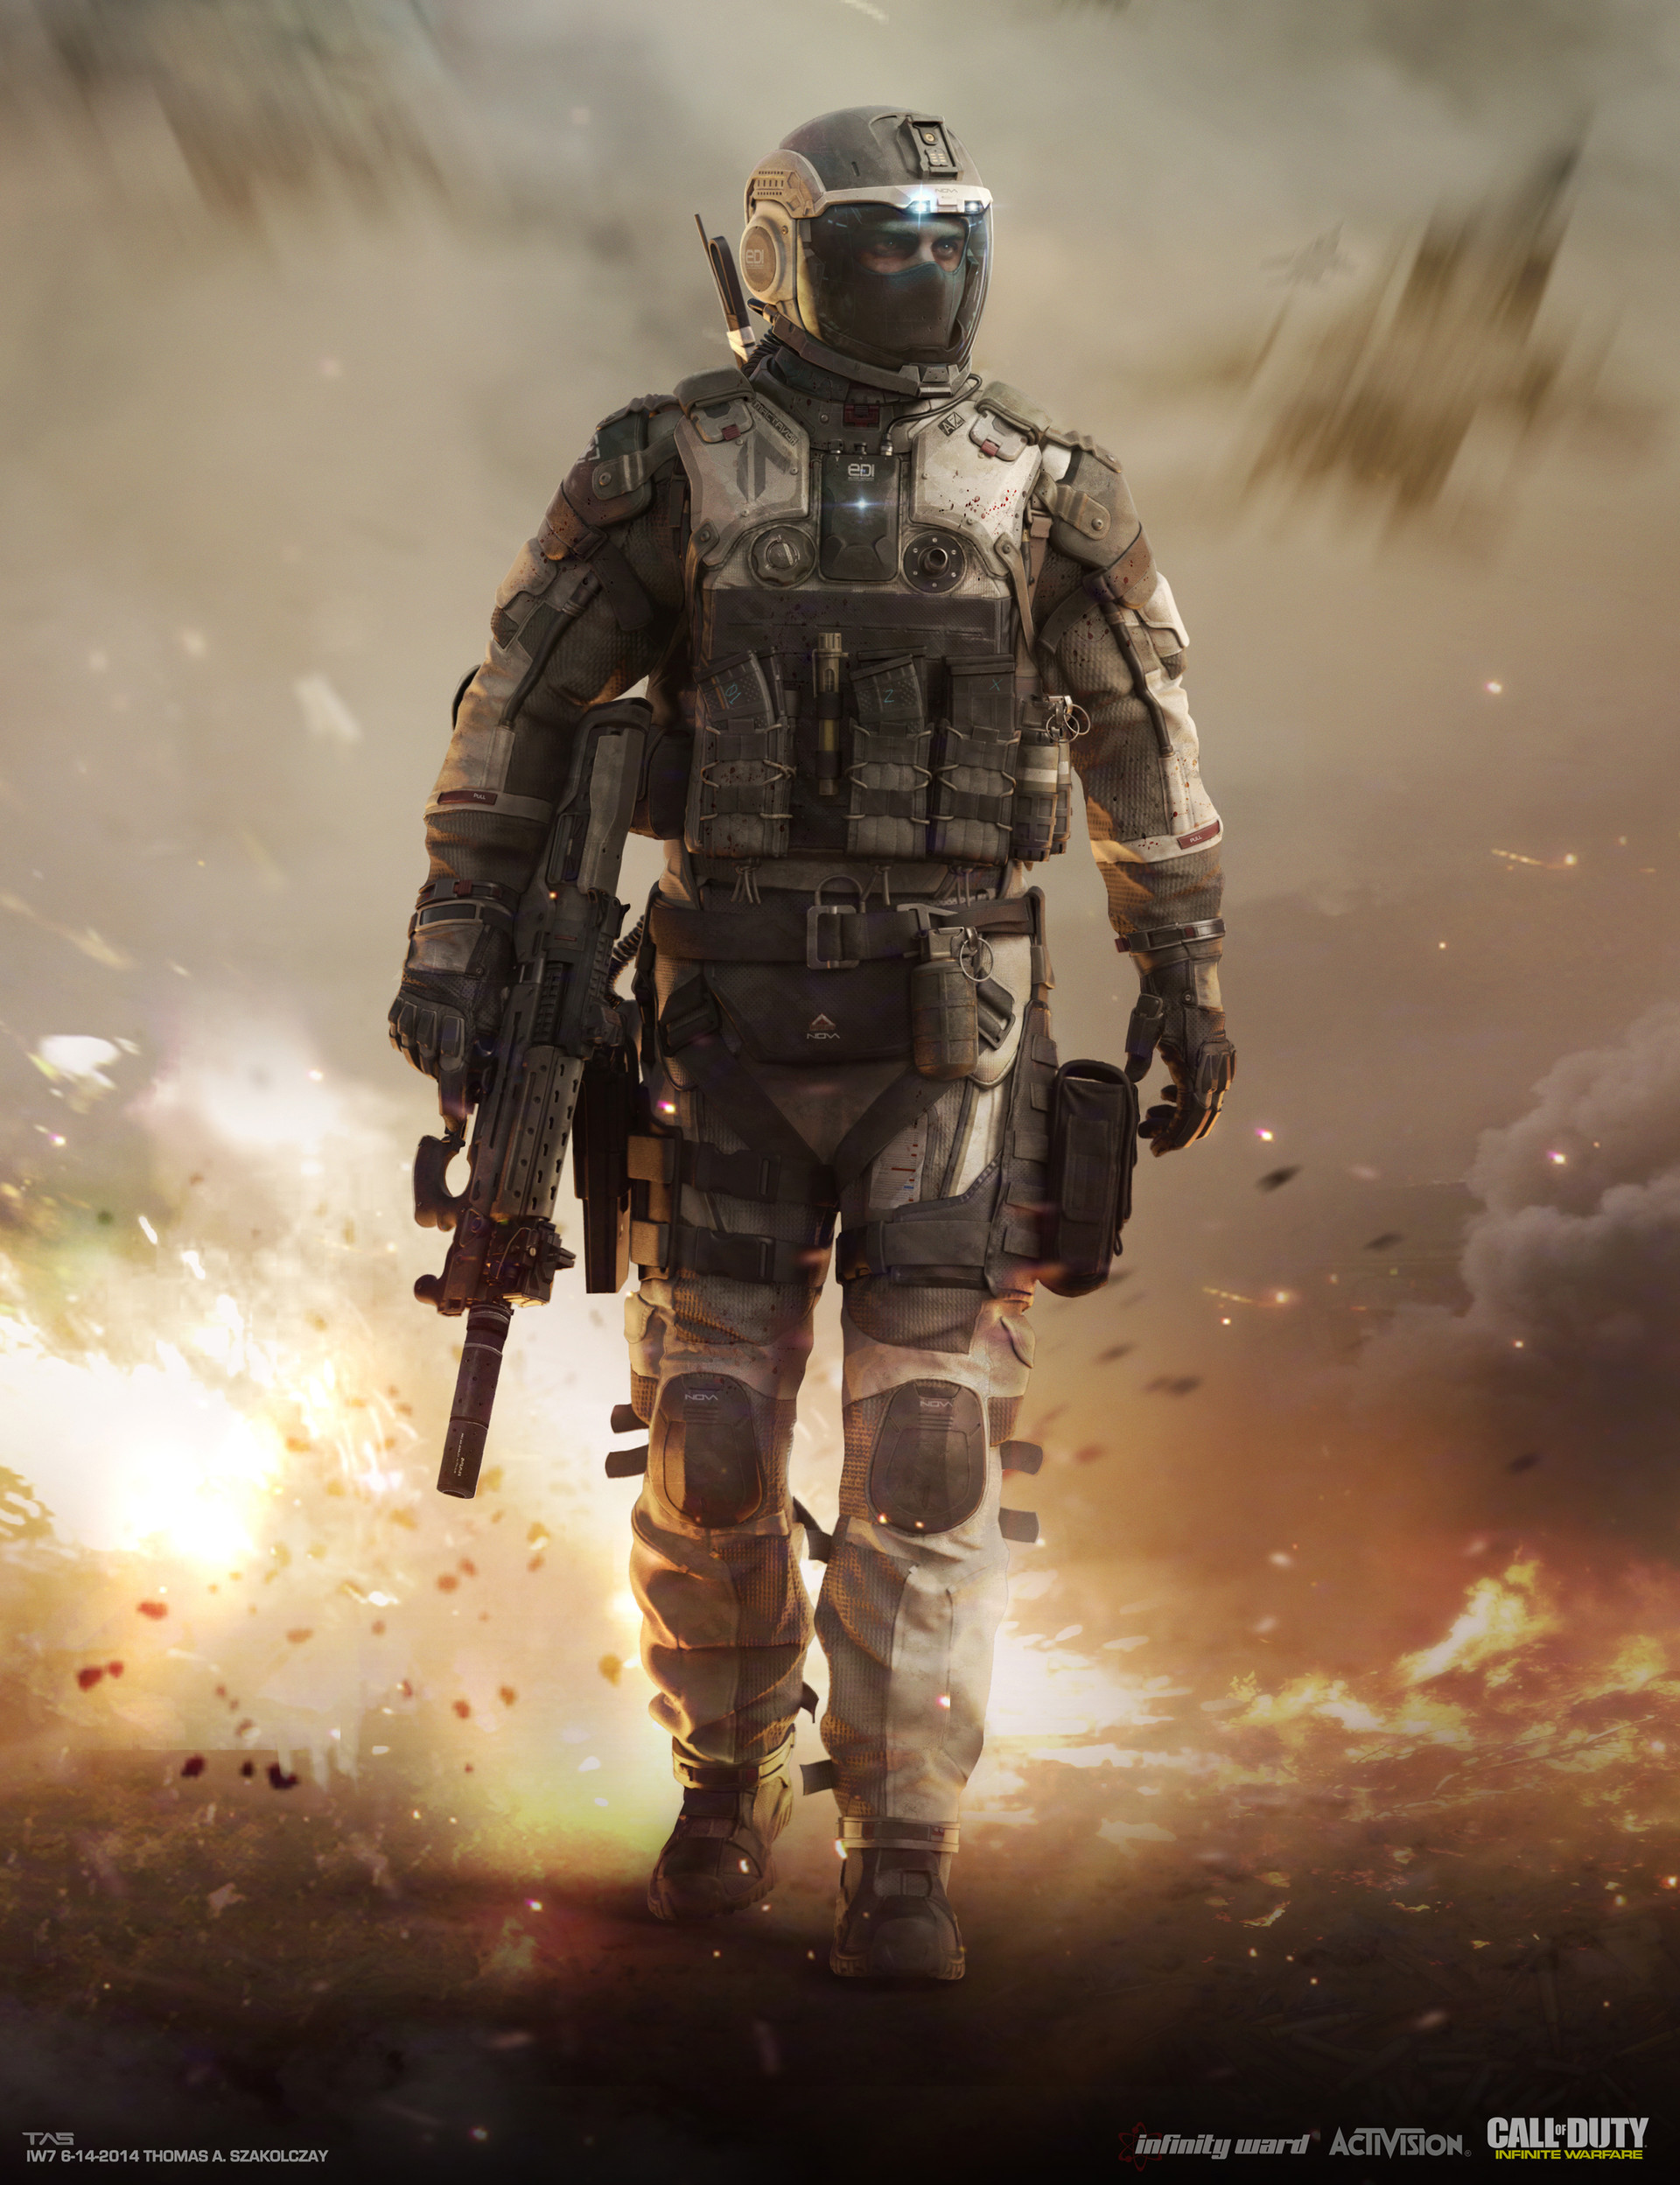 Some early look direction keyart for the SCAR pilot. Meant to be reminiscent of the Modern Warfare 2 cover.